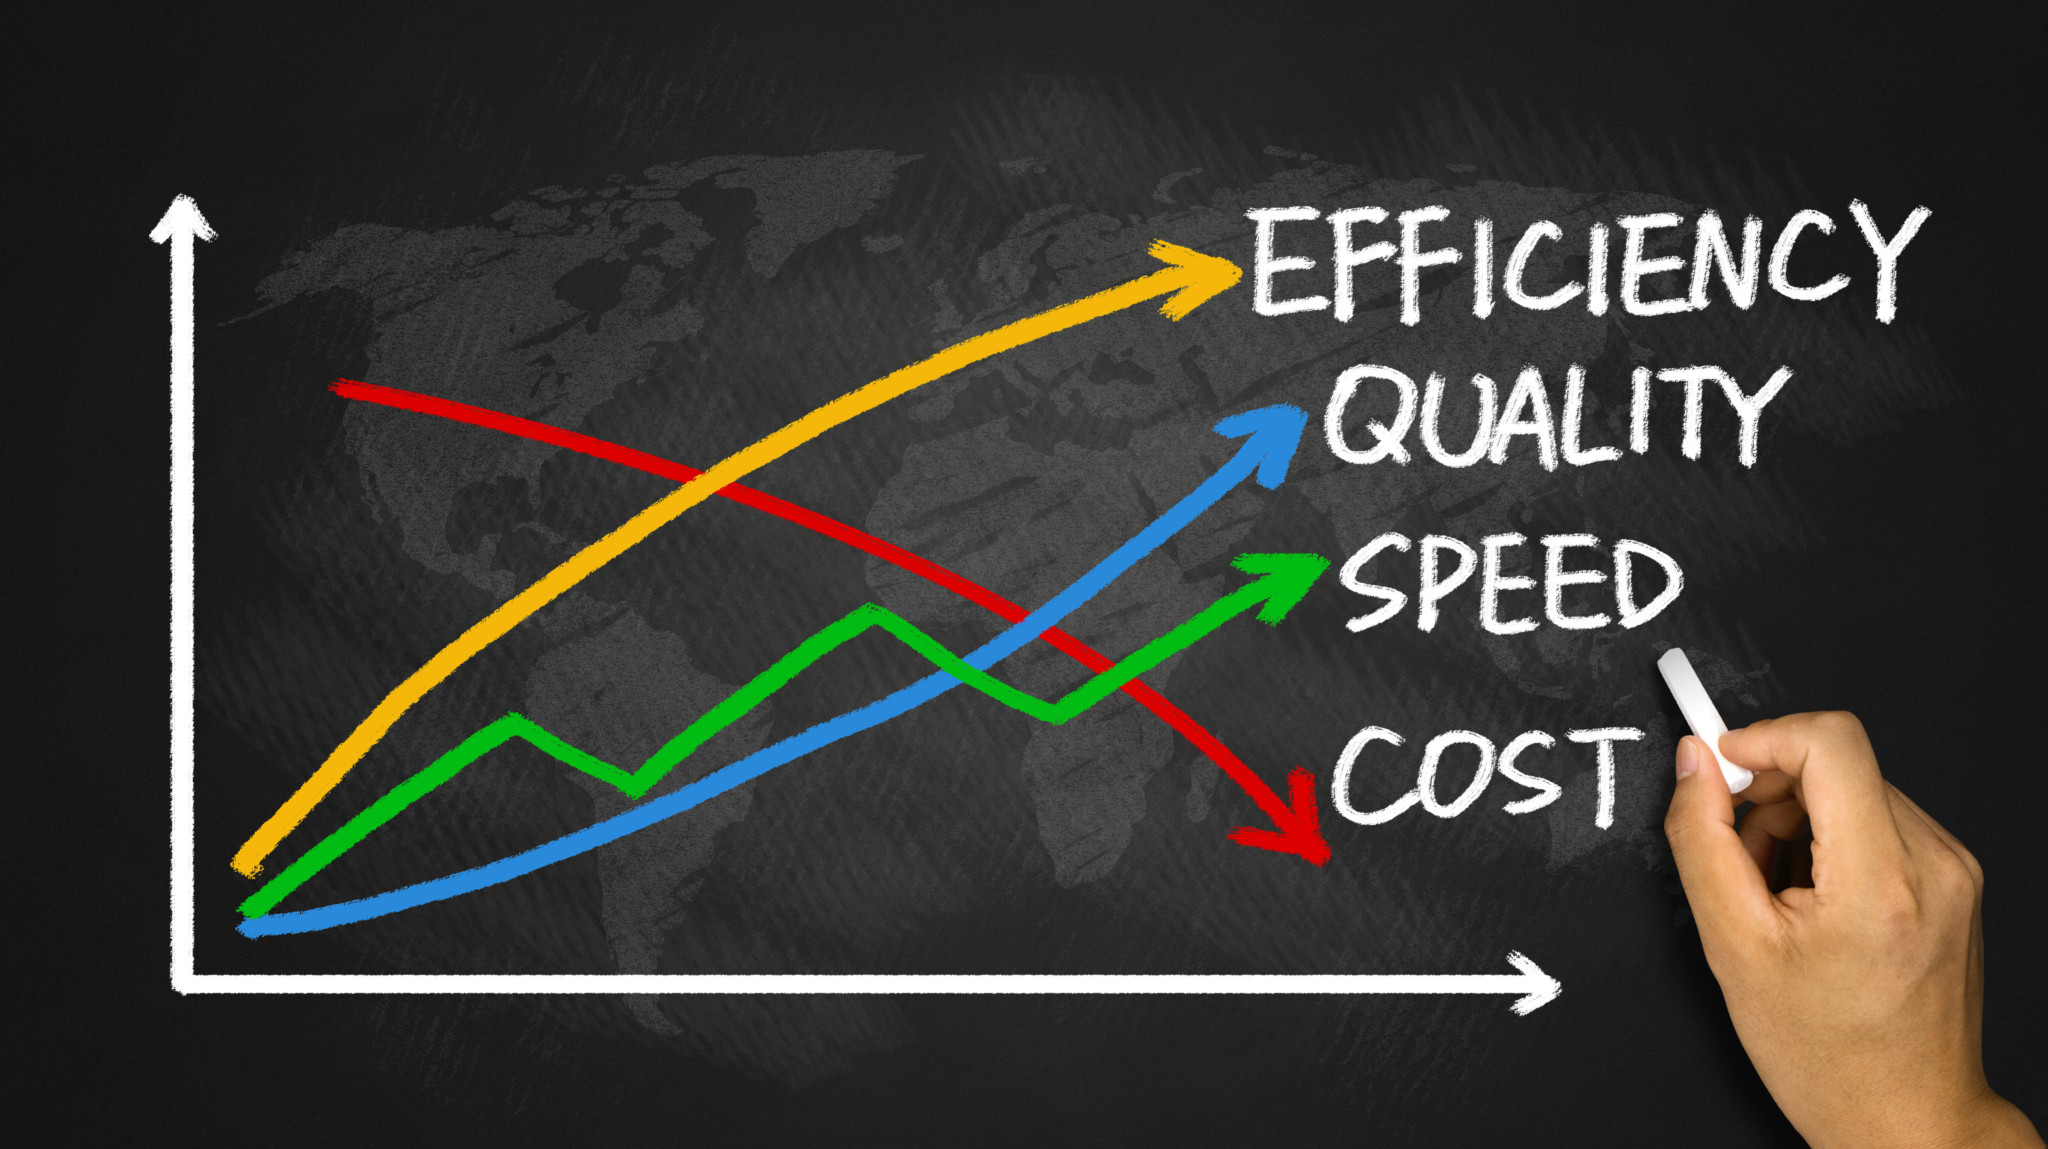 Diagram representing the relationship between efficiency, quality, speed and cost